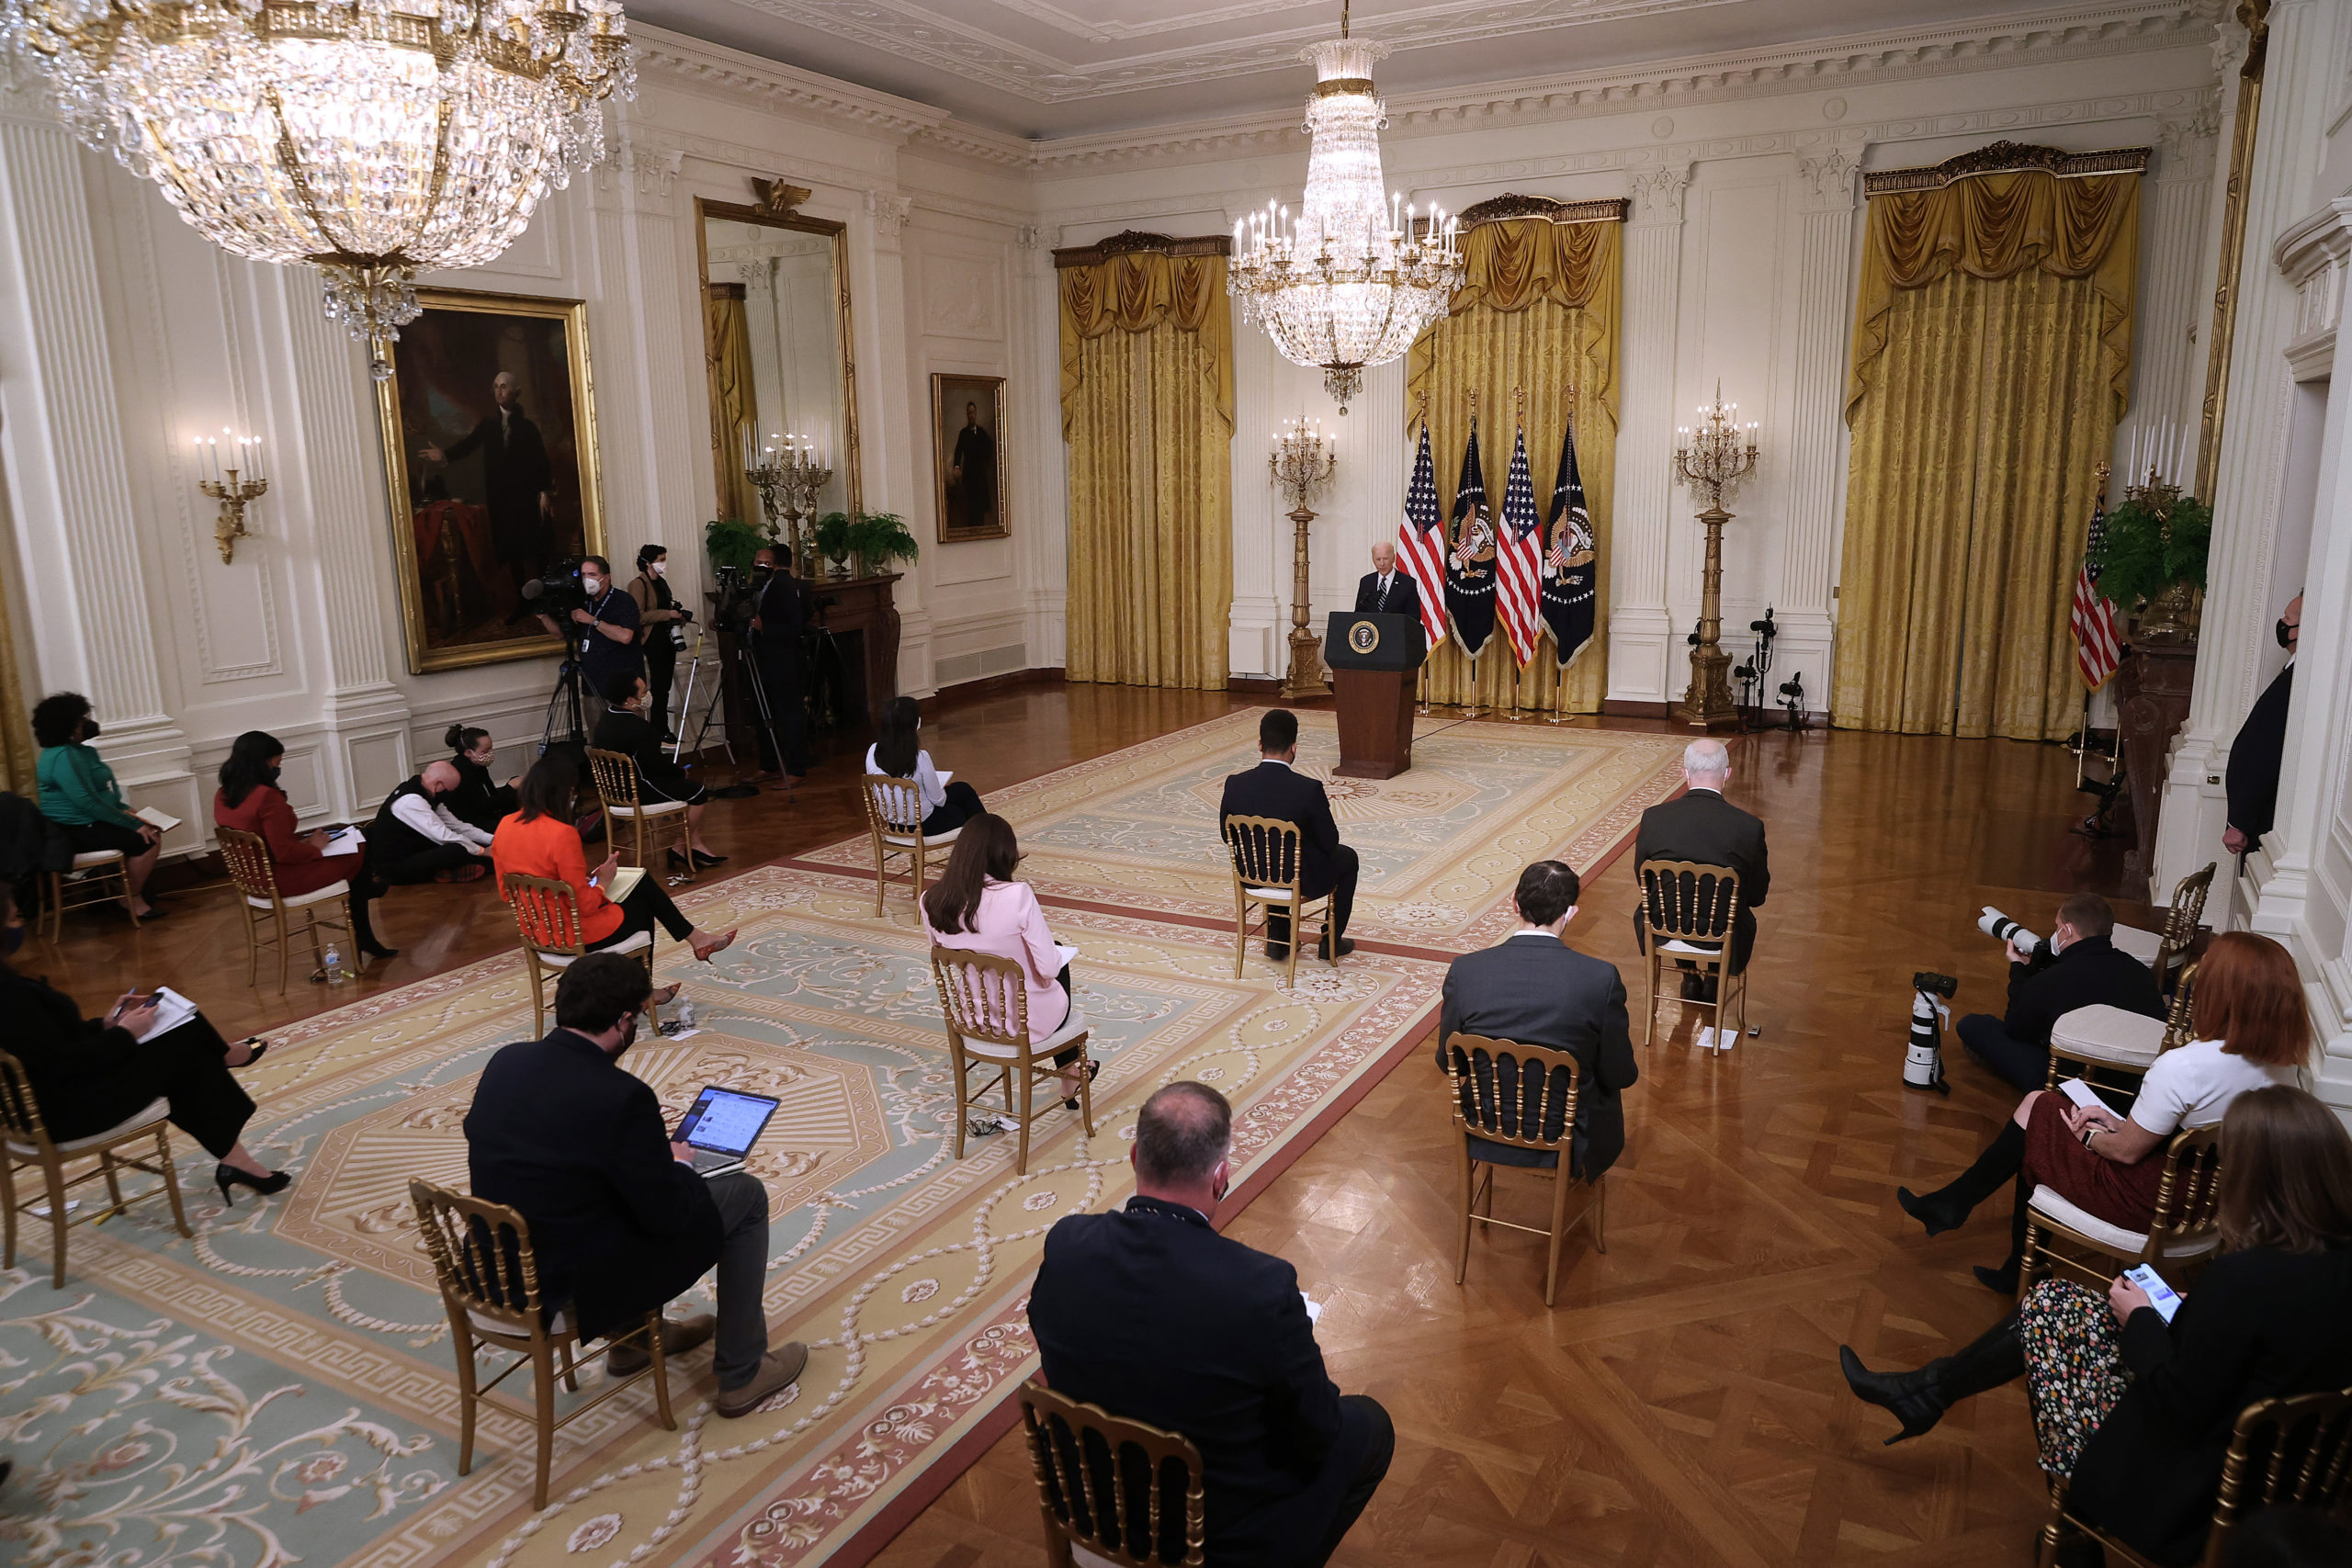 With reporters spaced out due to the ongoing coronavirus pandemic, U.S. President Joe Biden holds the first news conference of his presidency in the East Room of the White House on March 25, 2021 in Washington, DC. (Chip Somodevilla/Getty Images)